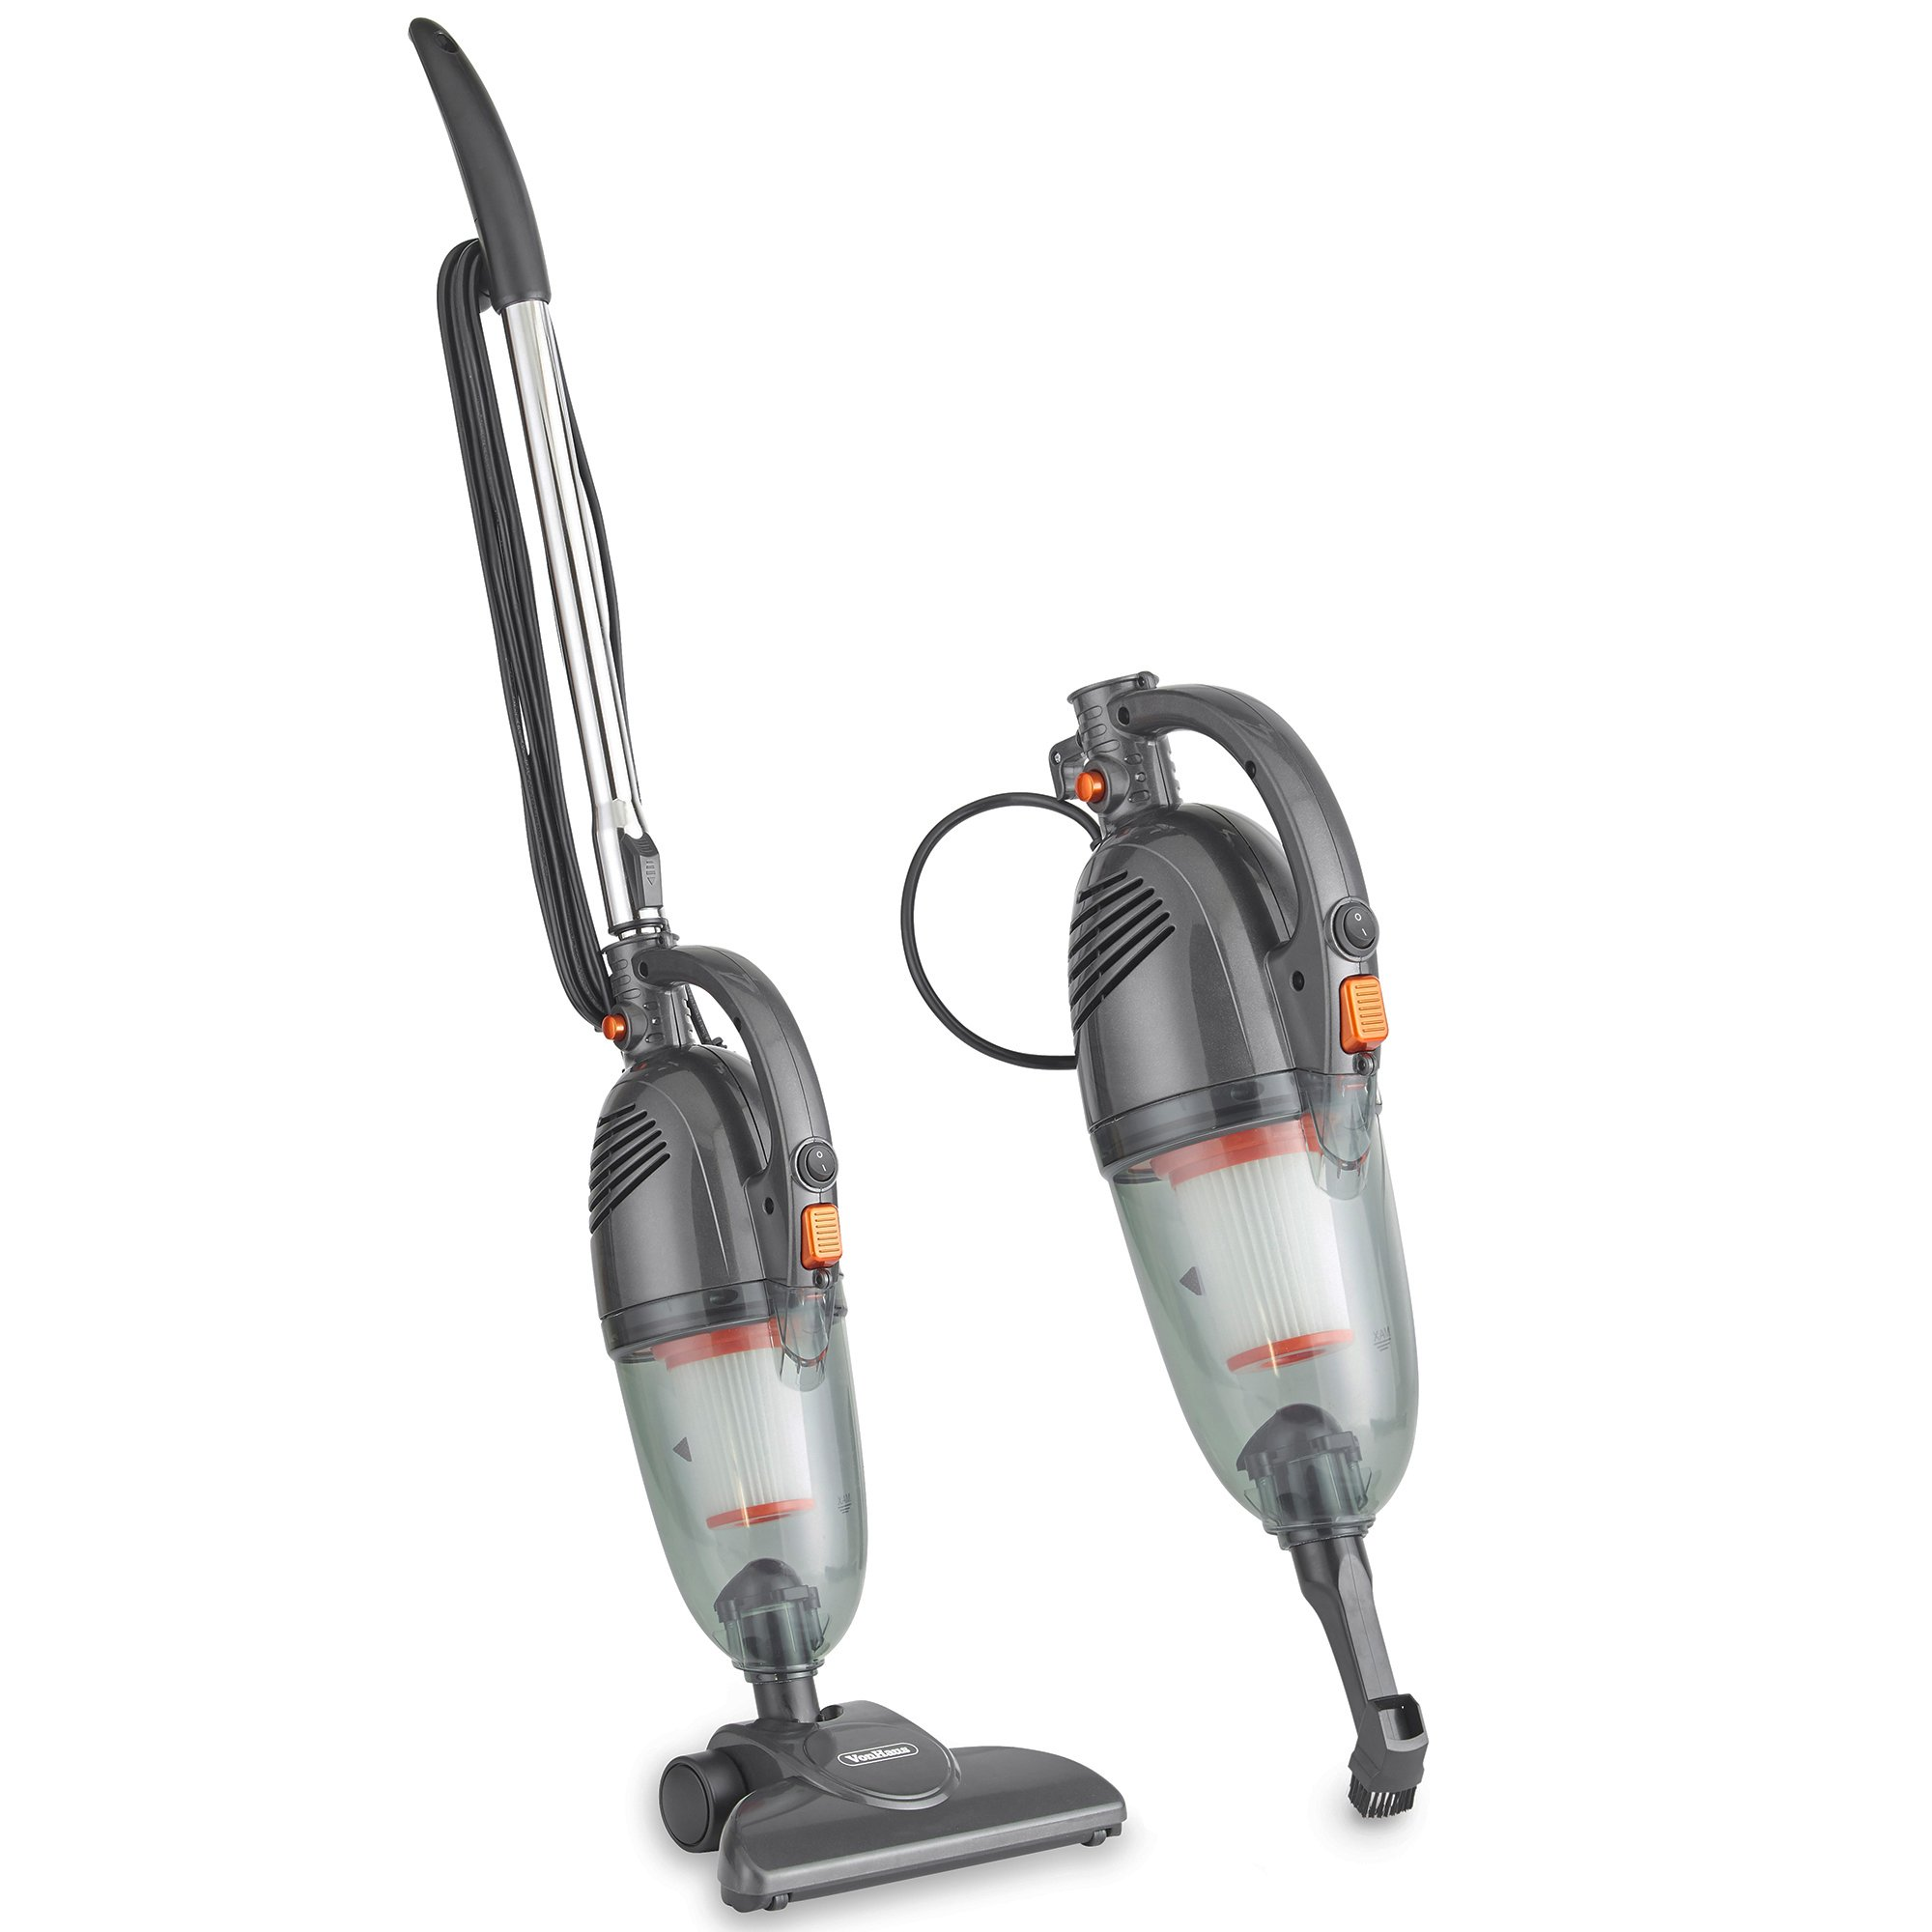 VonHaus Gray 2 in 1 Corded Lightweight Stick Vacuum and Handheld Vacuum Cleaner Bagless with HEPA Filtration, Crevice Tool and Brush Accessories - Ideal for Hardwood Floors